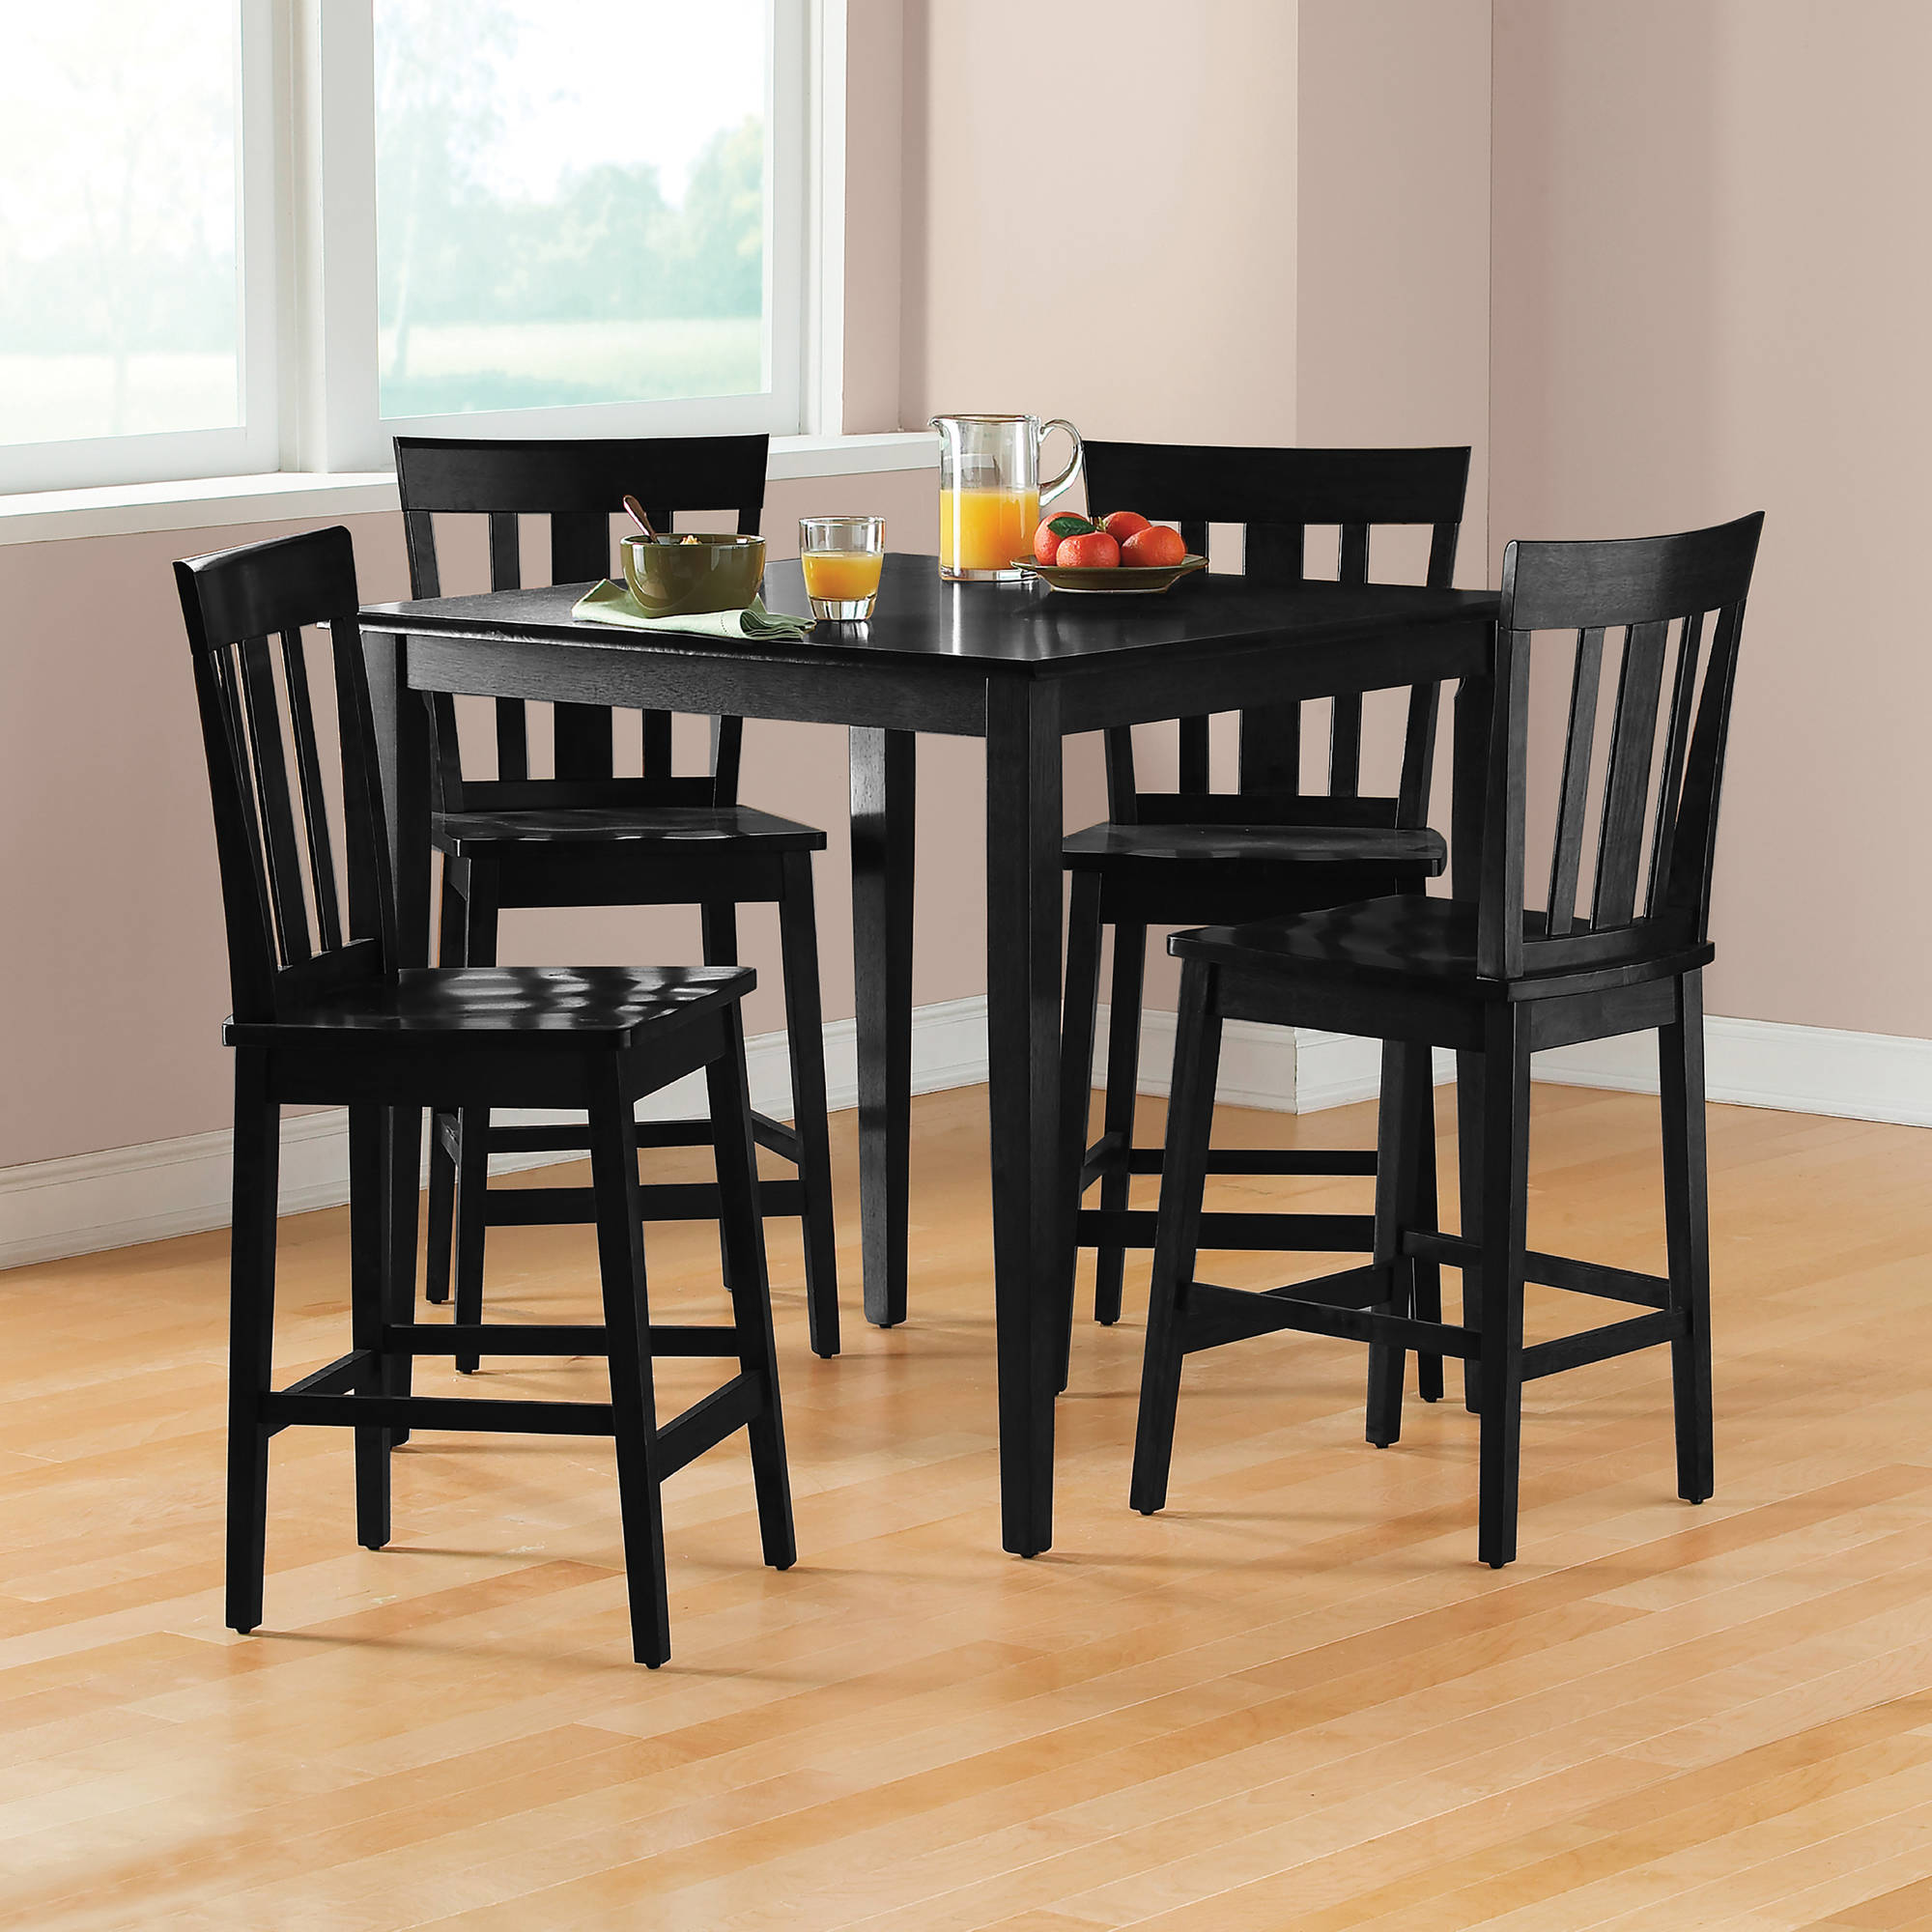 Mainstays 5 piece mission counter height dining set walmart com